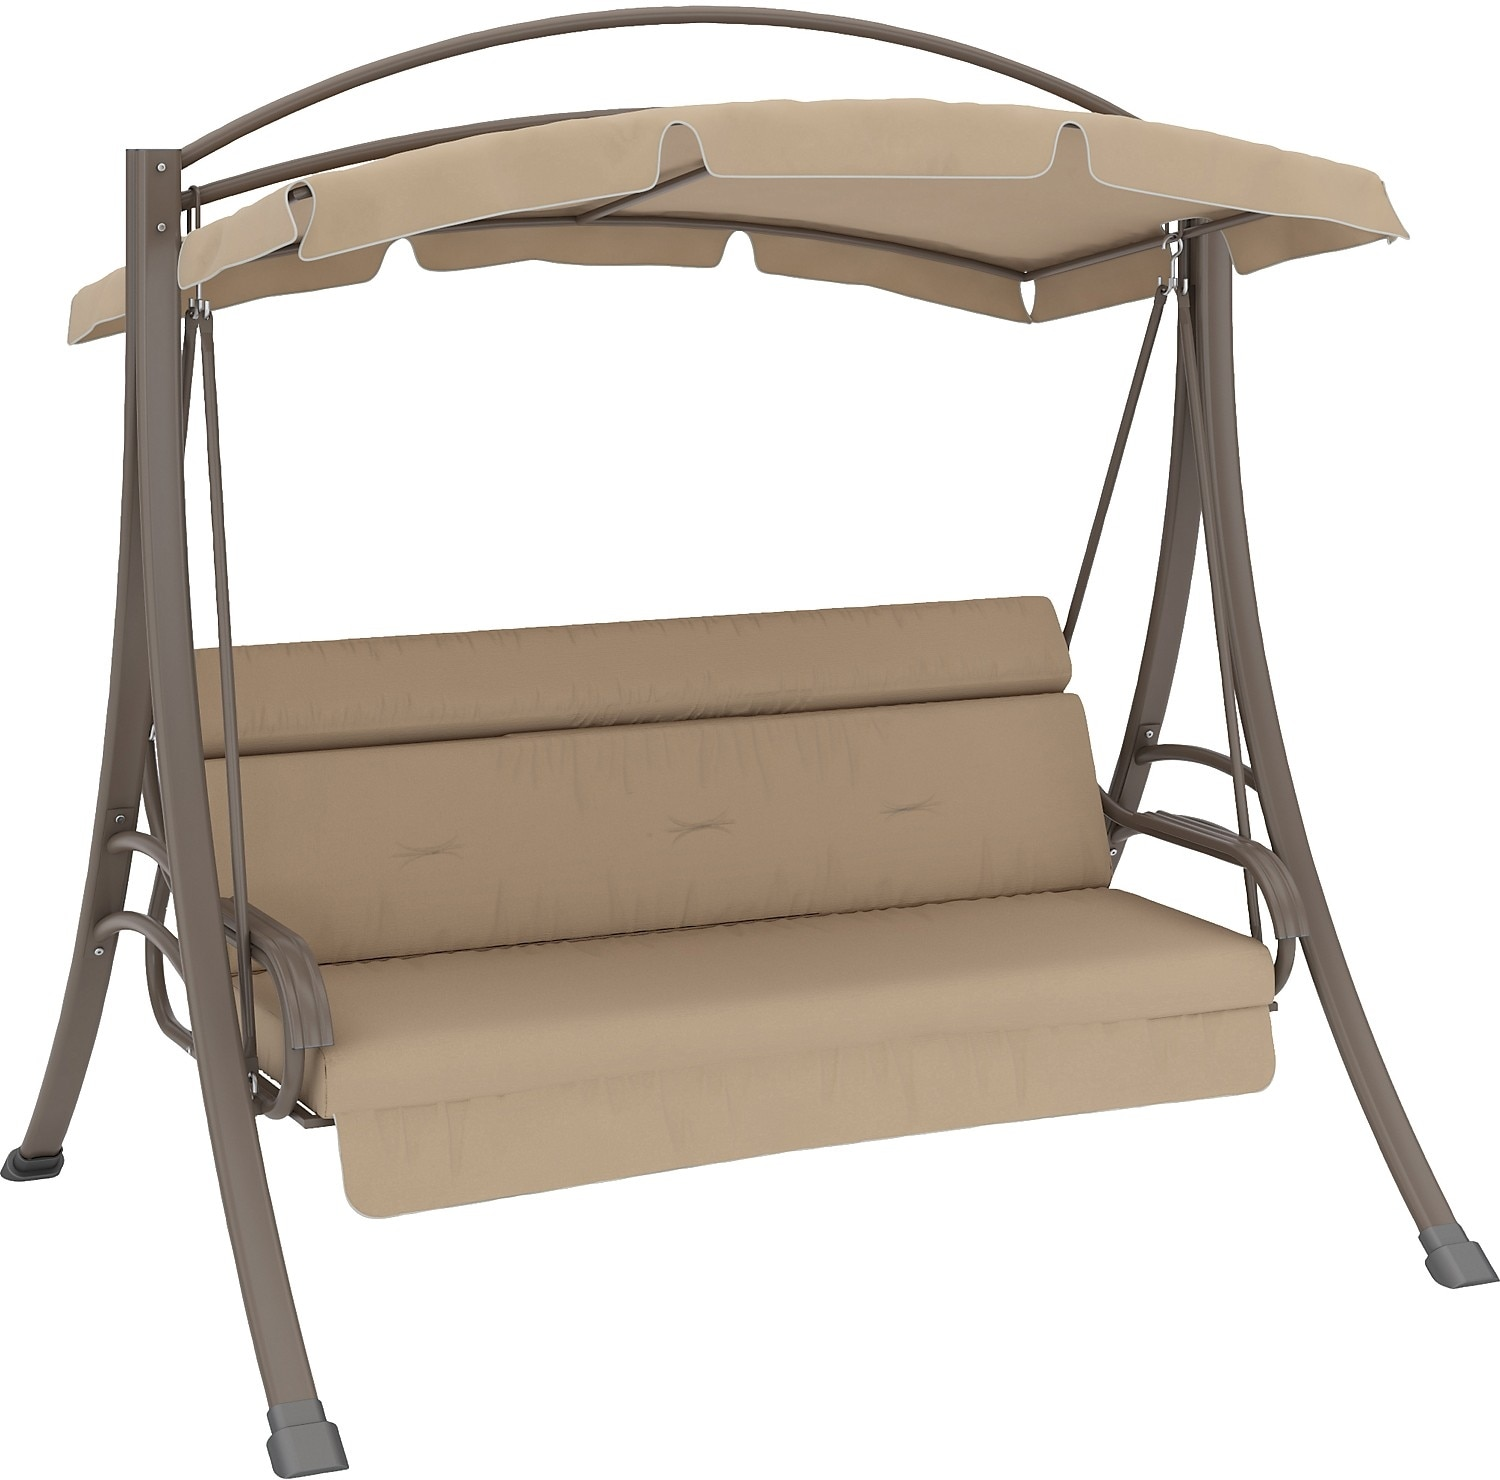 Nantucket Patio Swing with Arched Canopy - Beige